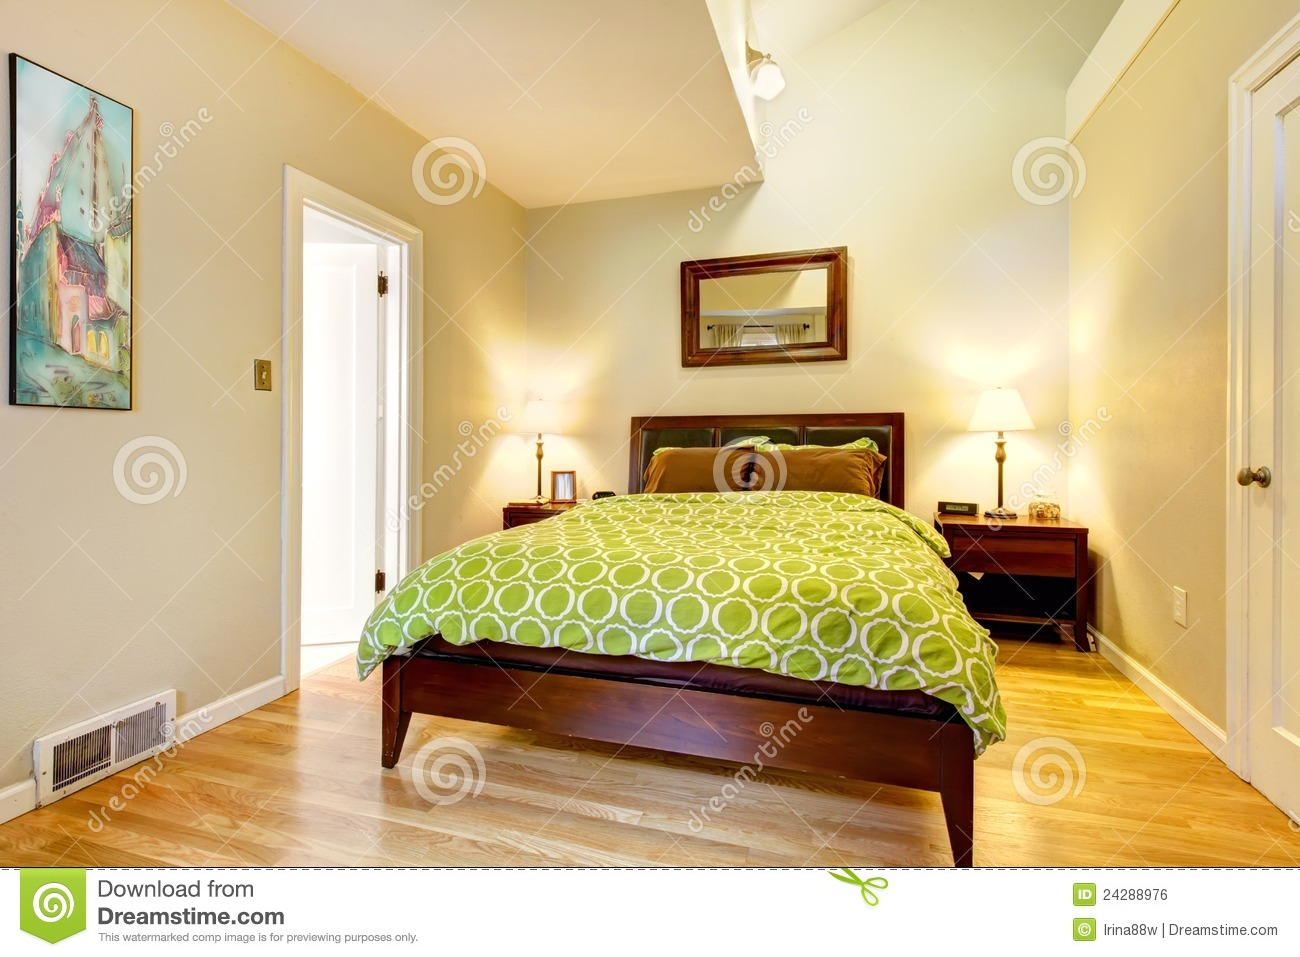 modern green and beige bedroom with brown bed. royalty free stock